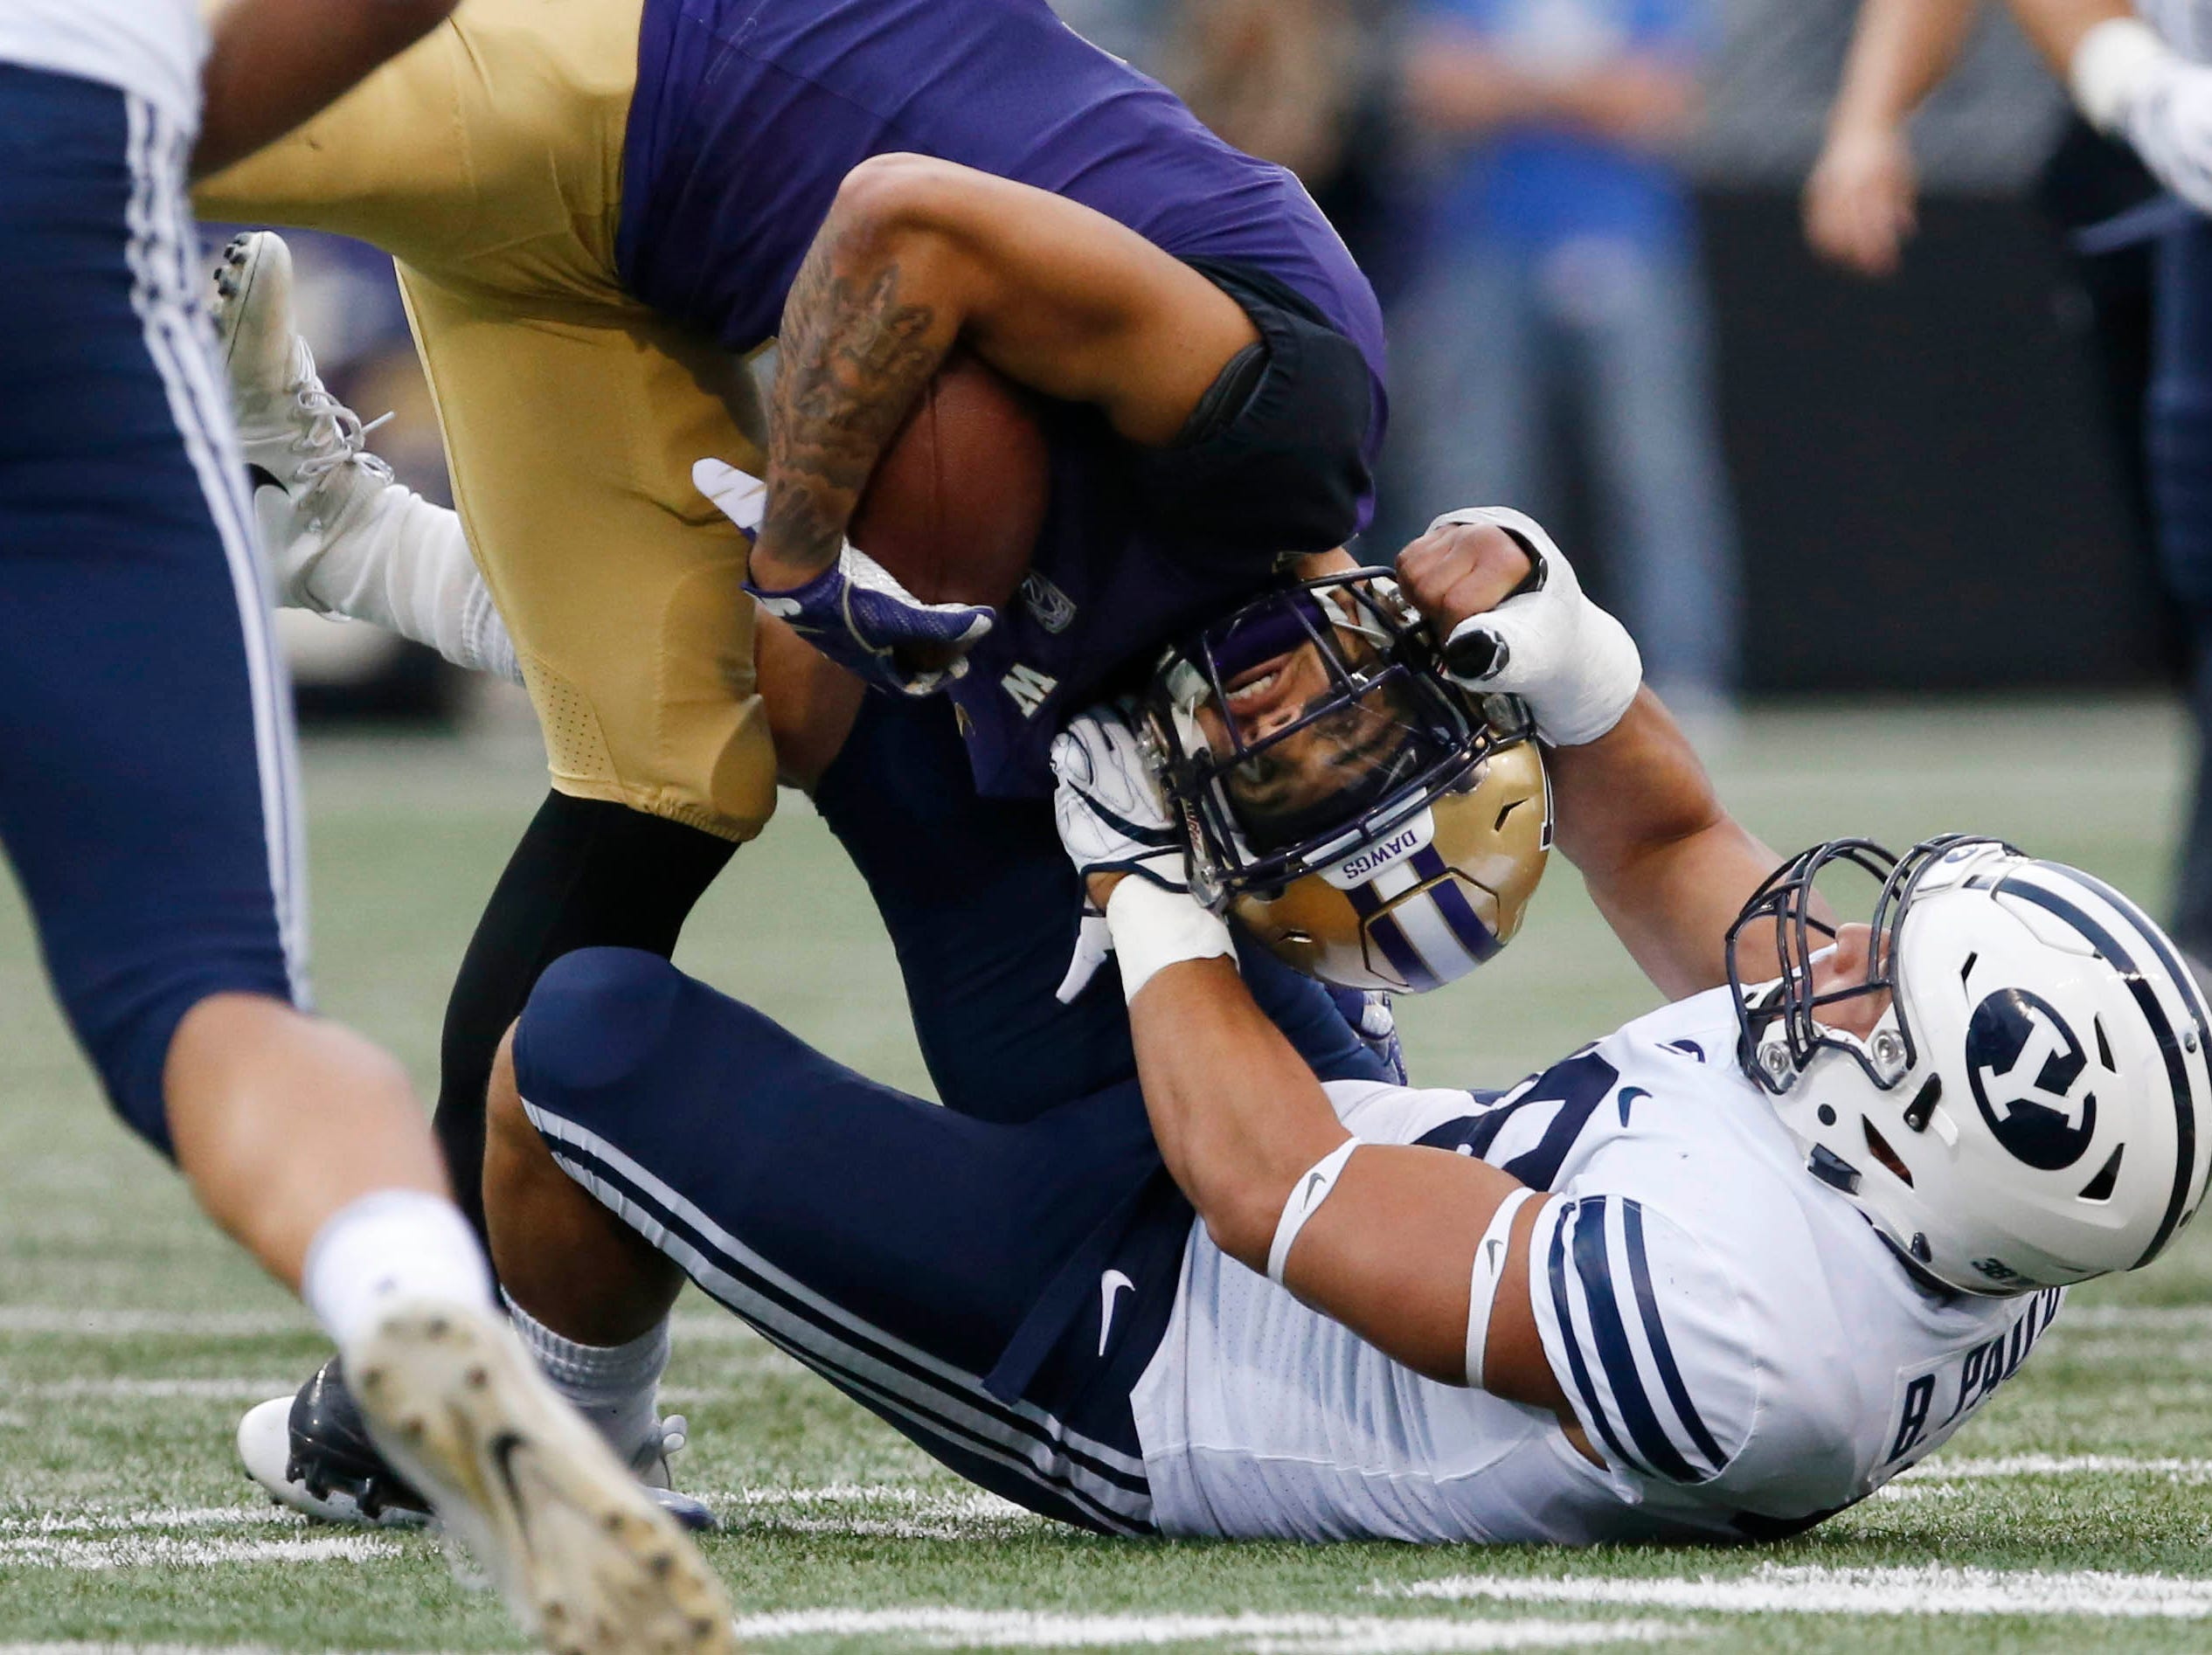 Sept. 29: Washington Huskies wide receiver Aaron Fuller (2) is pulled down by his helmet by Brigham Young Cougars linebacker Butch Pau'u (38) during the first quarter at Husky Stadium.